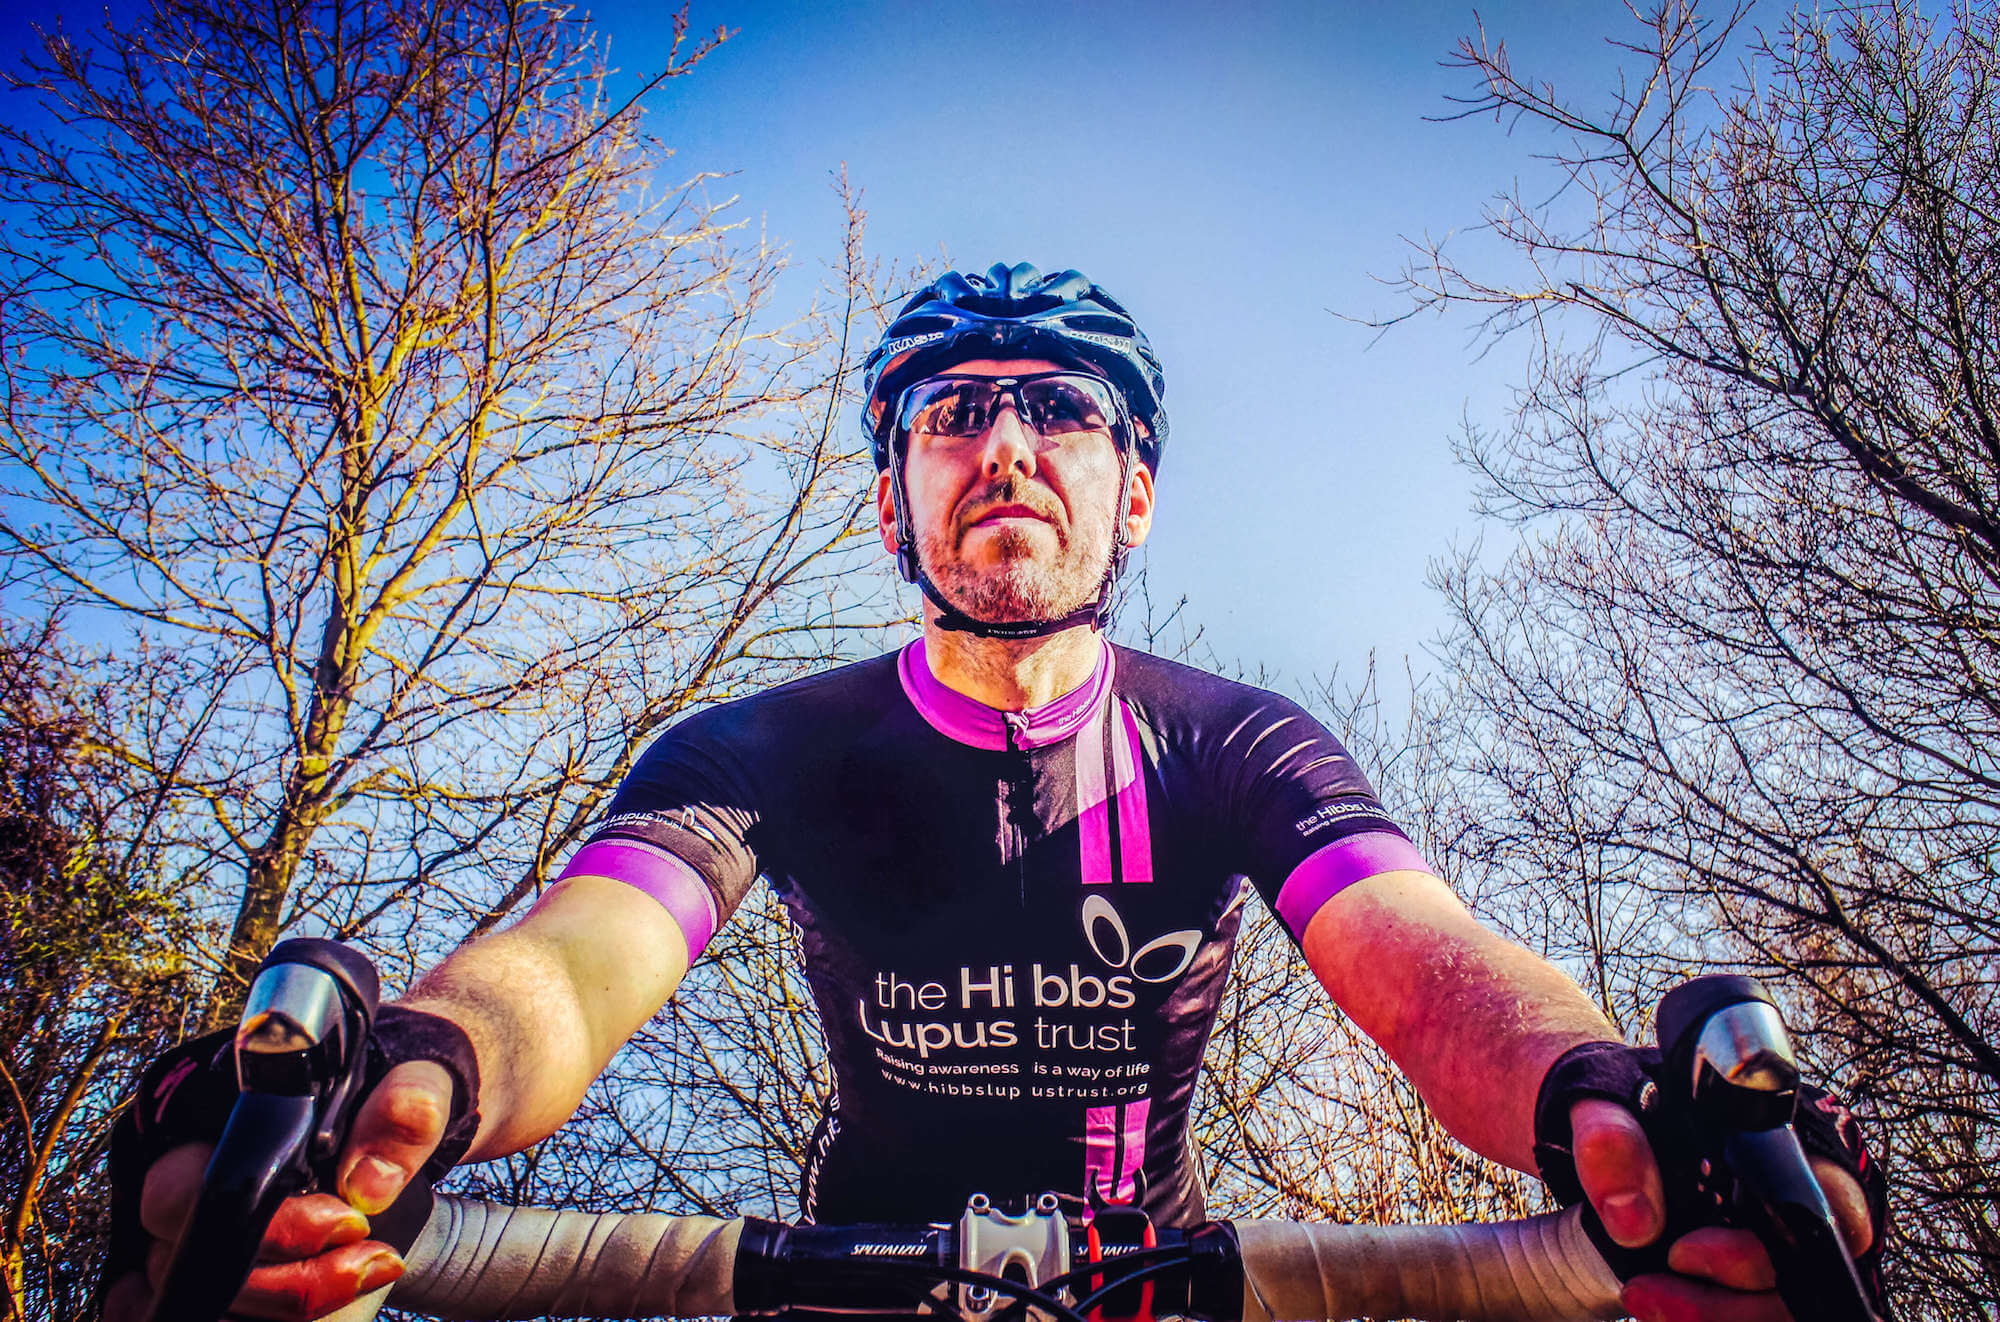 London to Paris - The Hibbs Lupus Trust